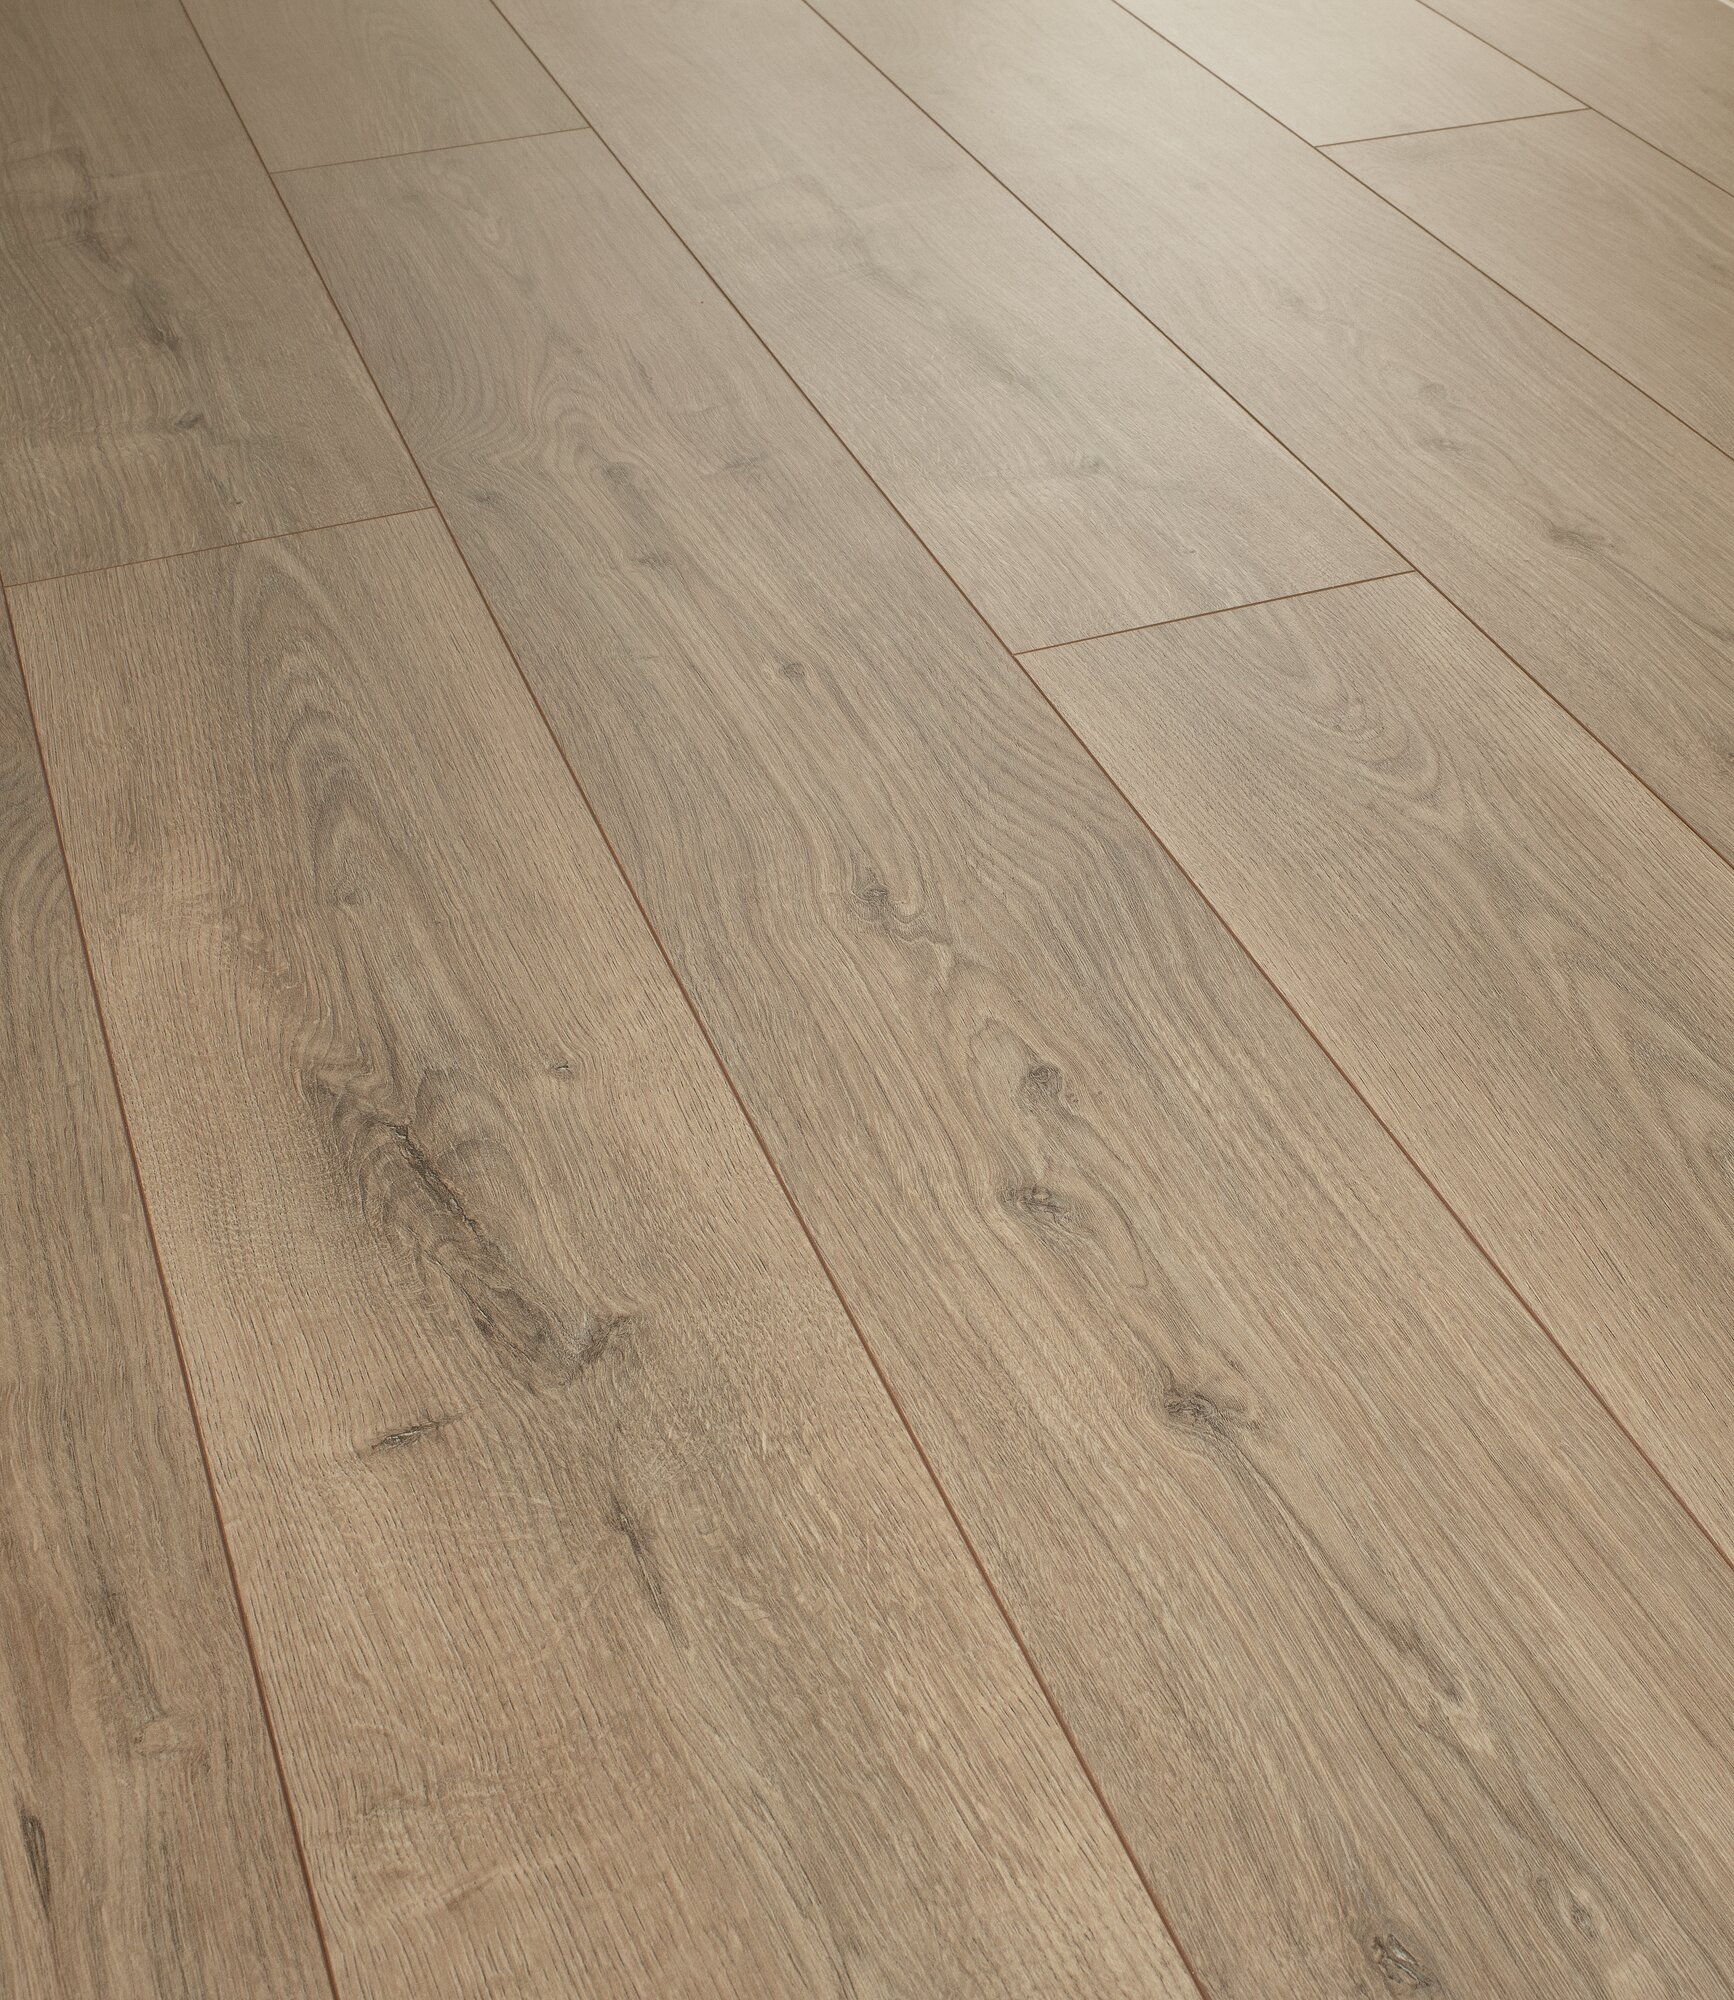 Parchet laminat rezistent la apa Swiss Krono Liberty Natural Oak Brown D 4931 PM